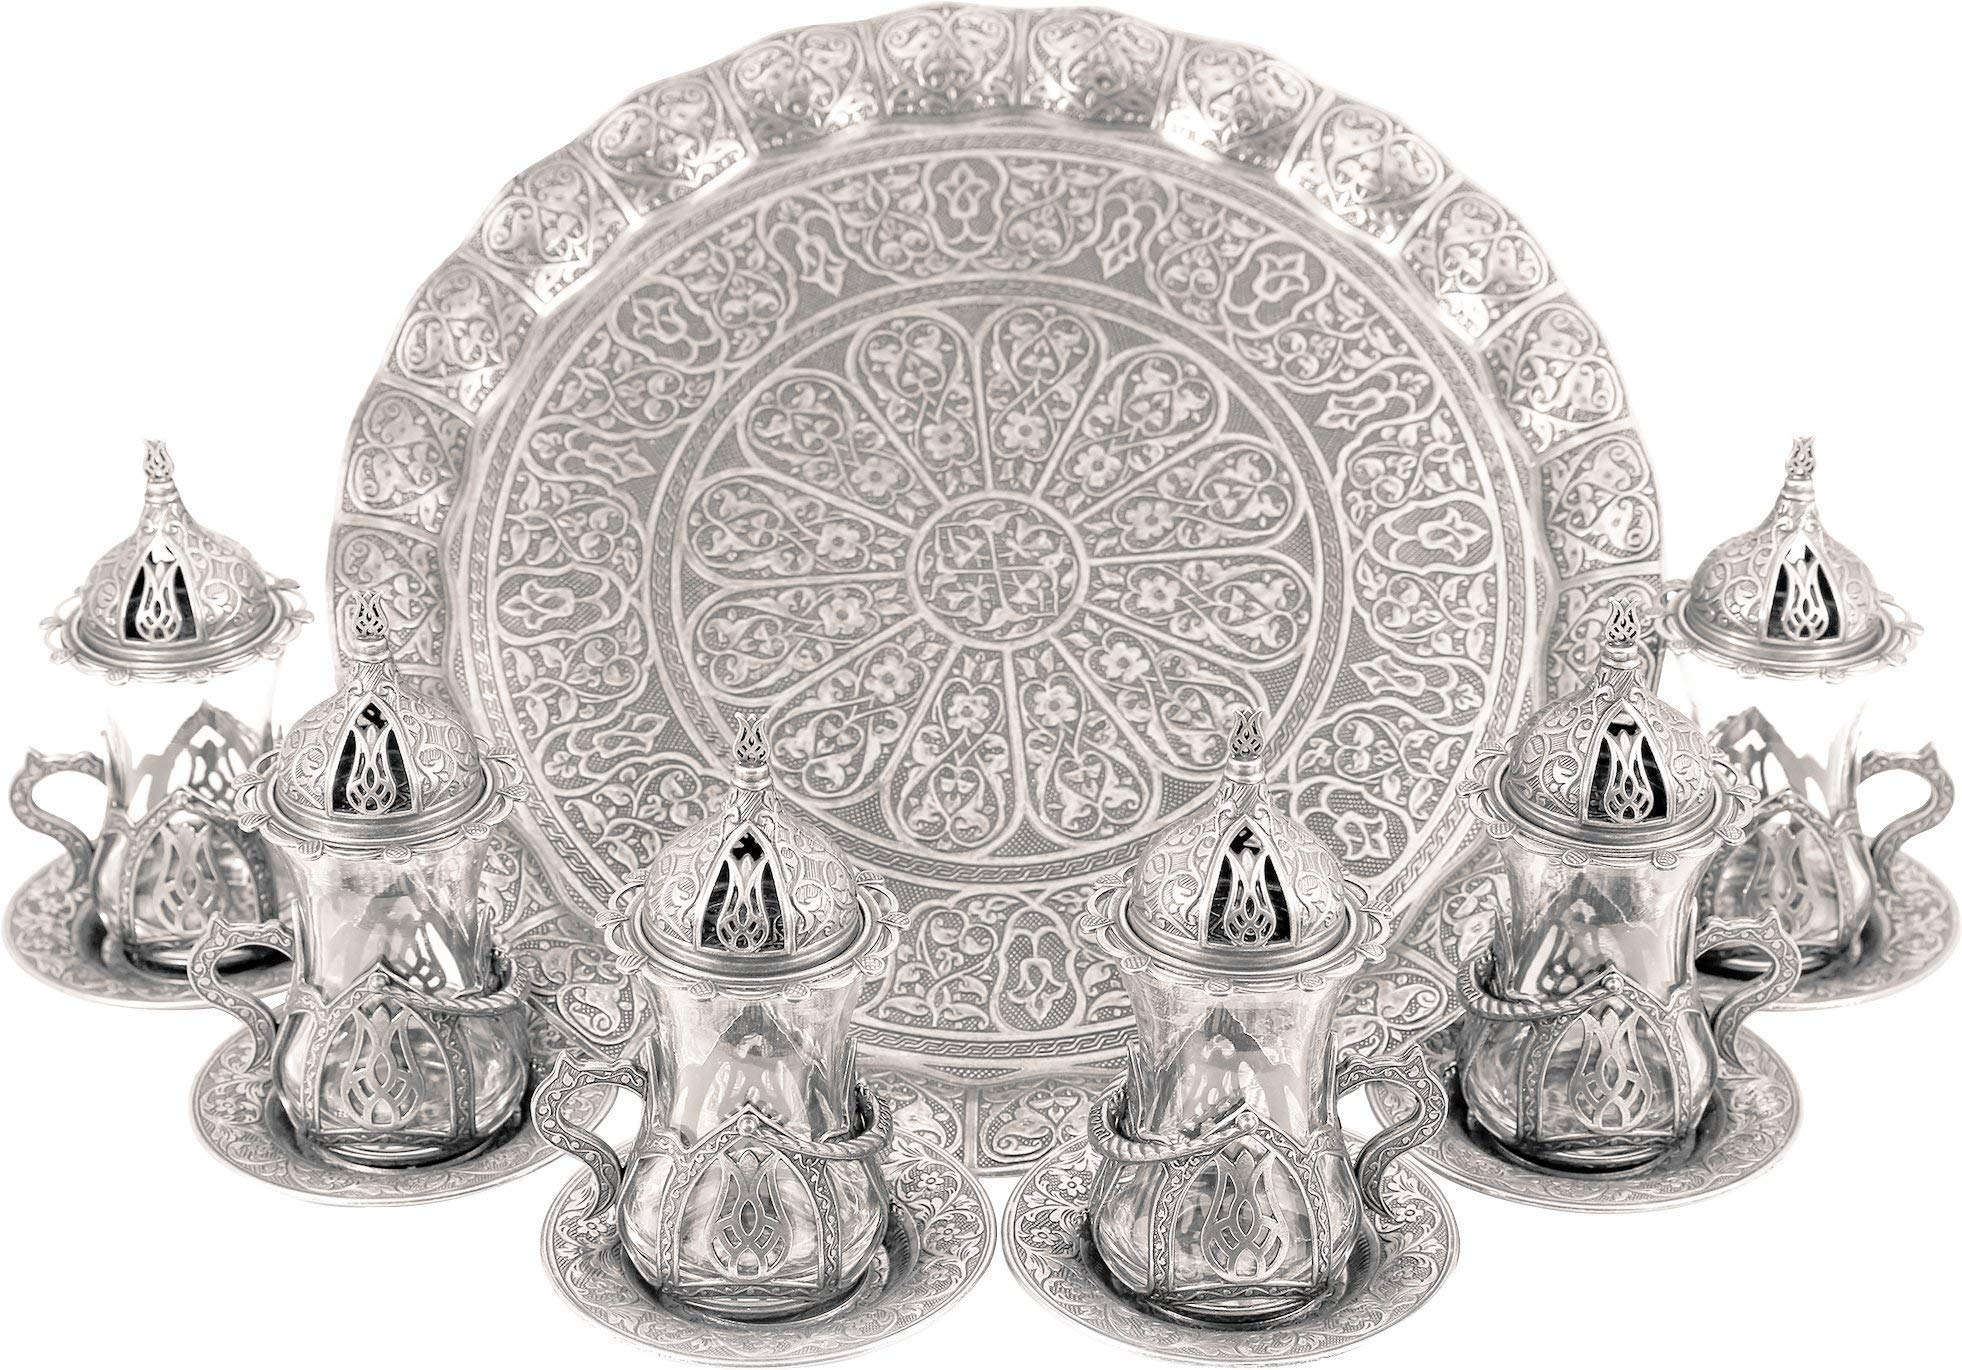 Turkish Moroccan Indian Tea Set for Six - Glasses with Brass Holders Lids Saucers Tray, Tea Cups, Tea Servers- (TS-202)